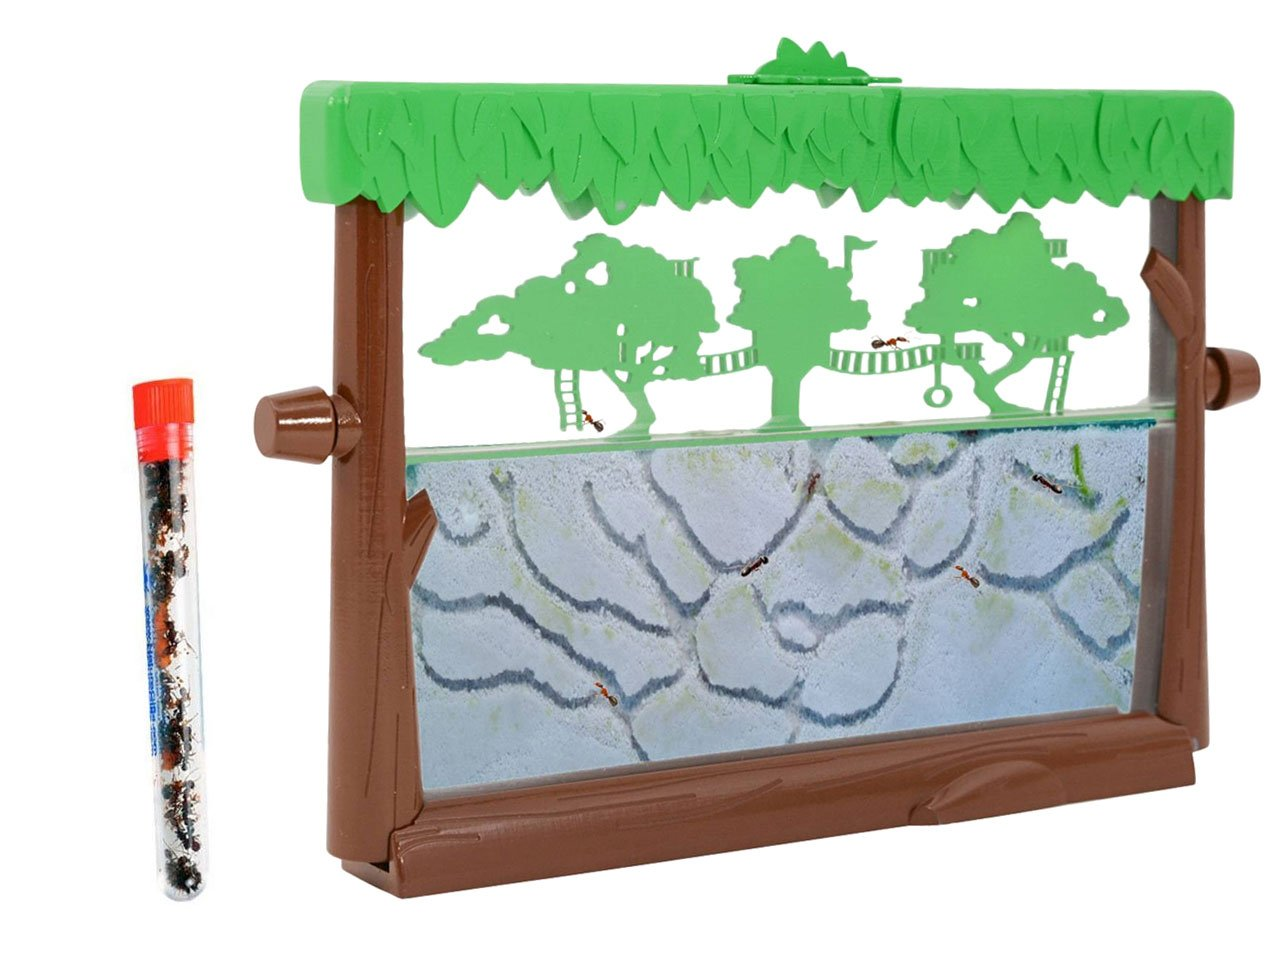 Live Ant Habitat Shipped with 25 Live Ants NOW (1 Tube of Ants) Tree House Theme